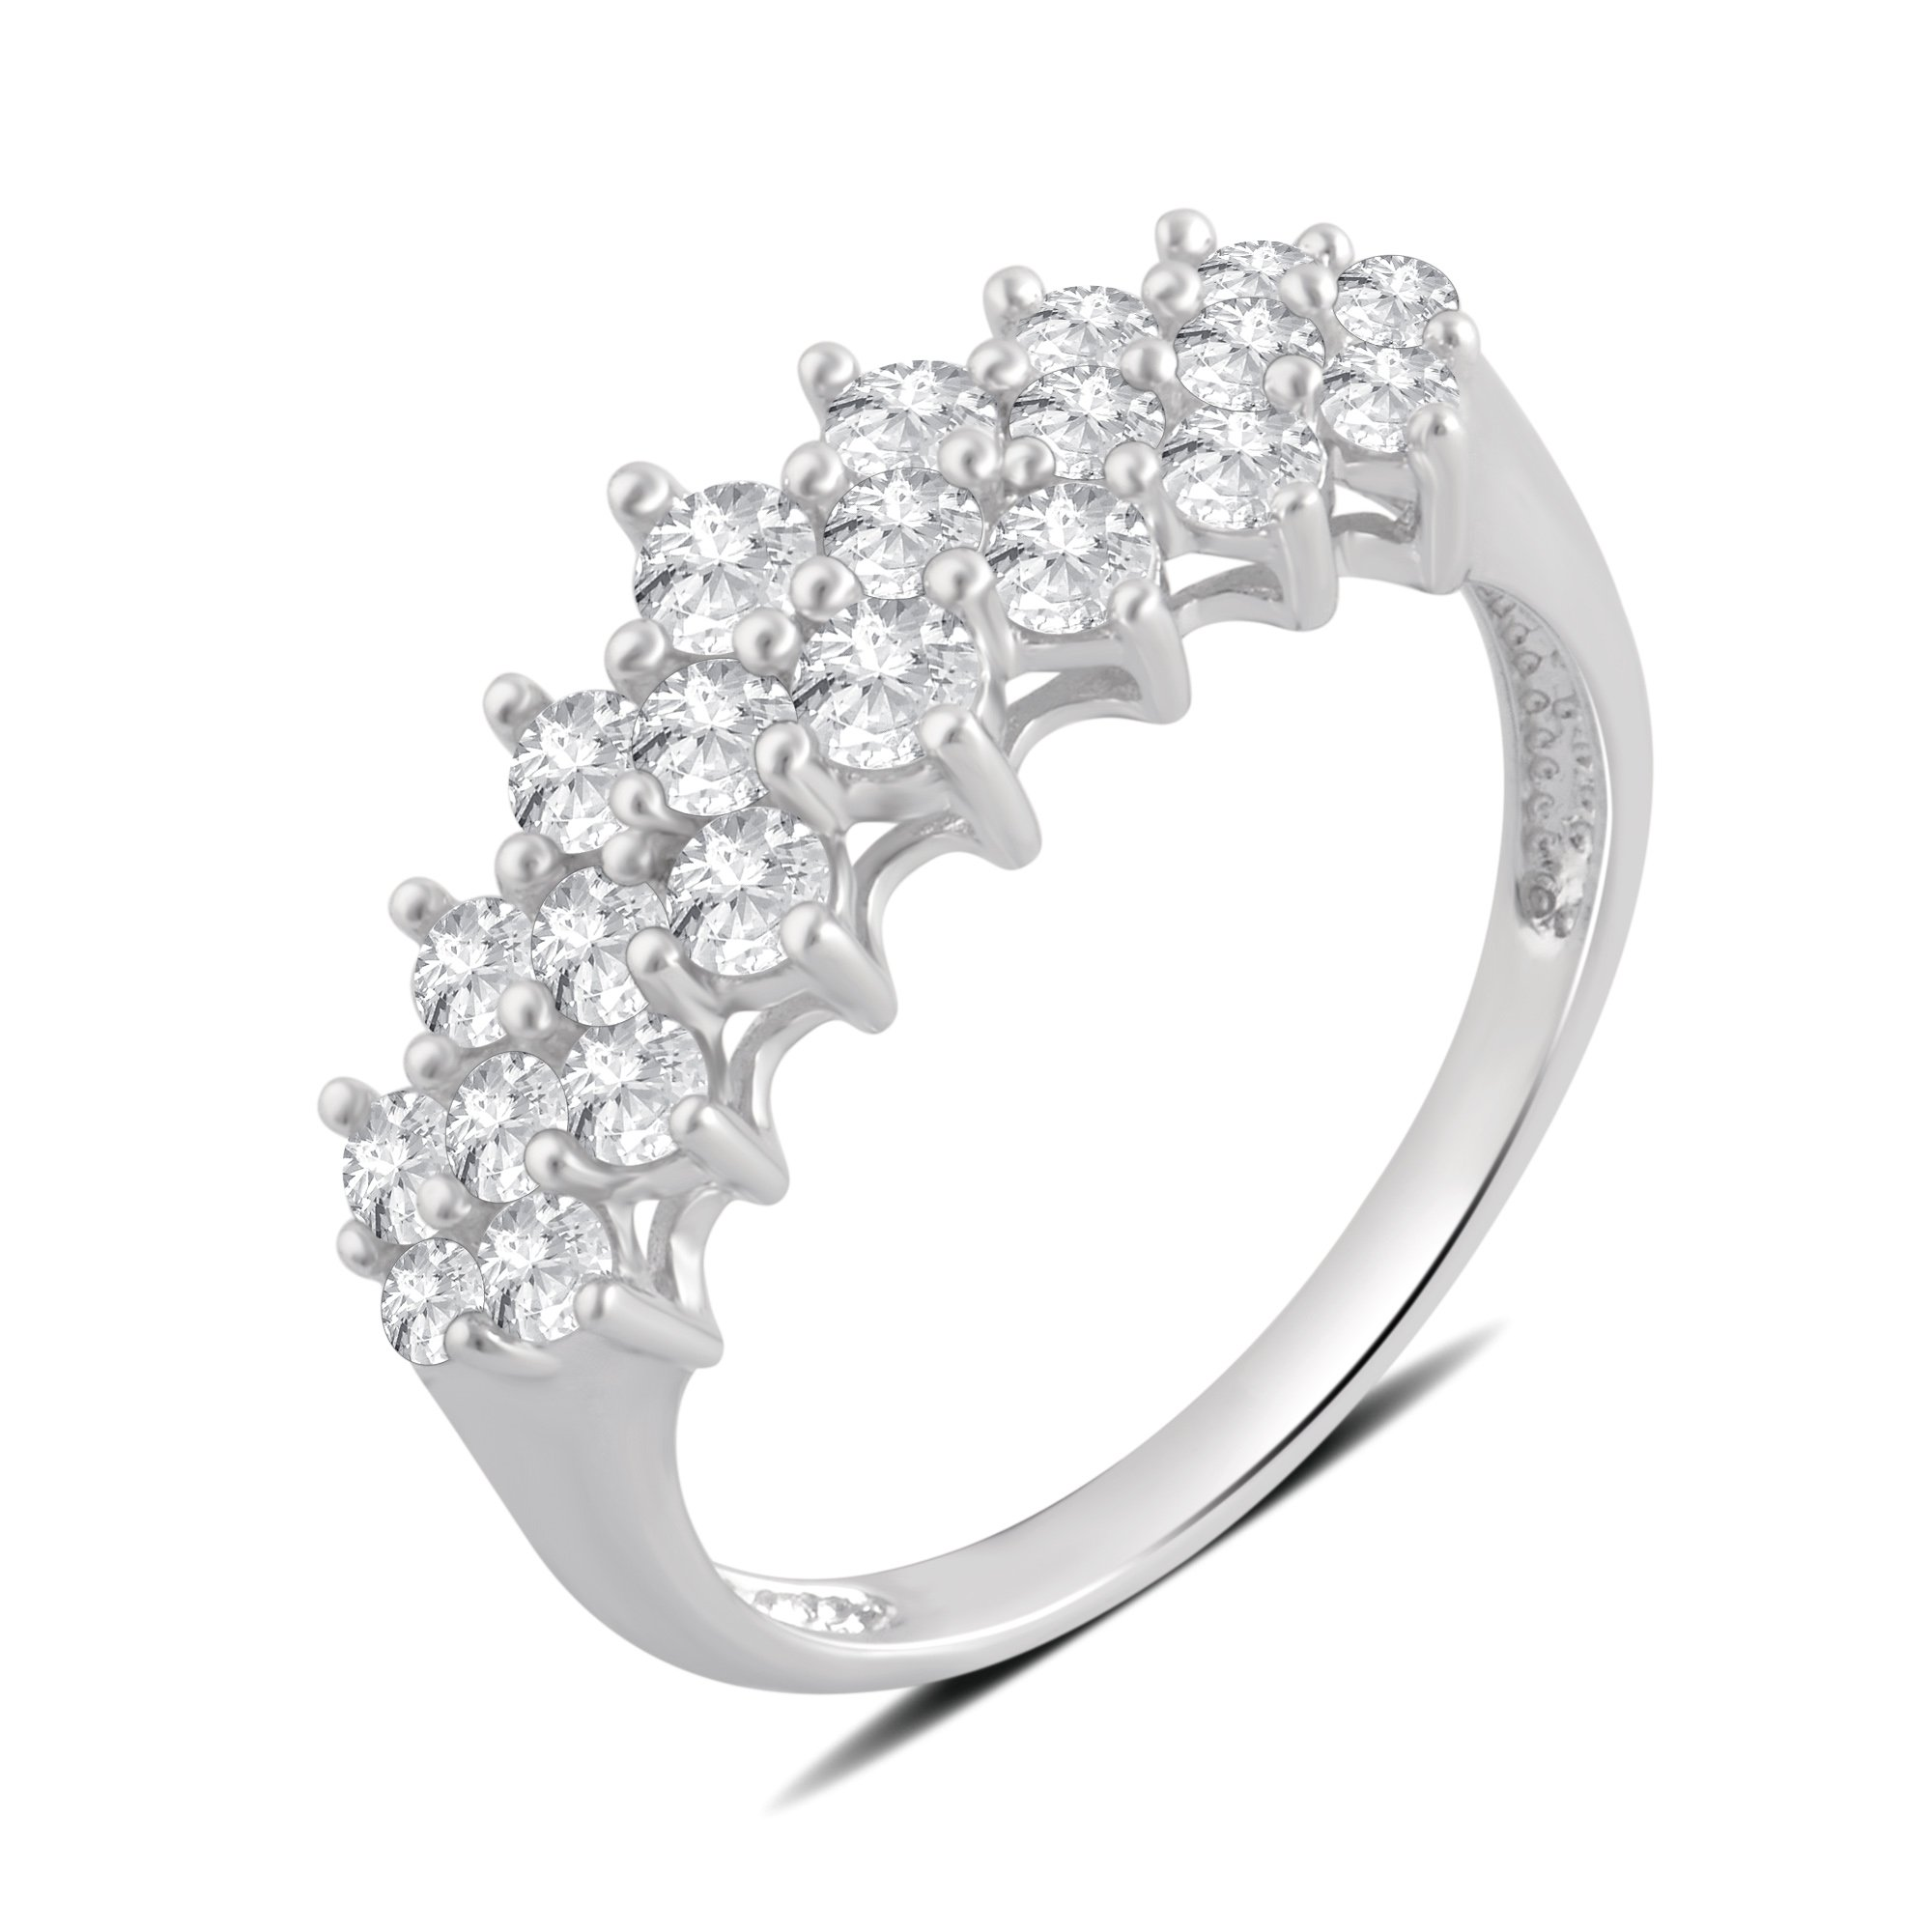 1.00 Cttw Diamond Pyramid Ring in Sterling Silver